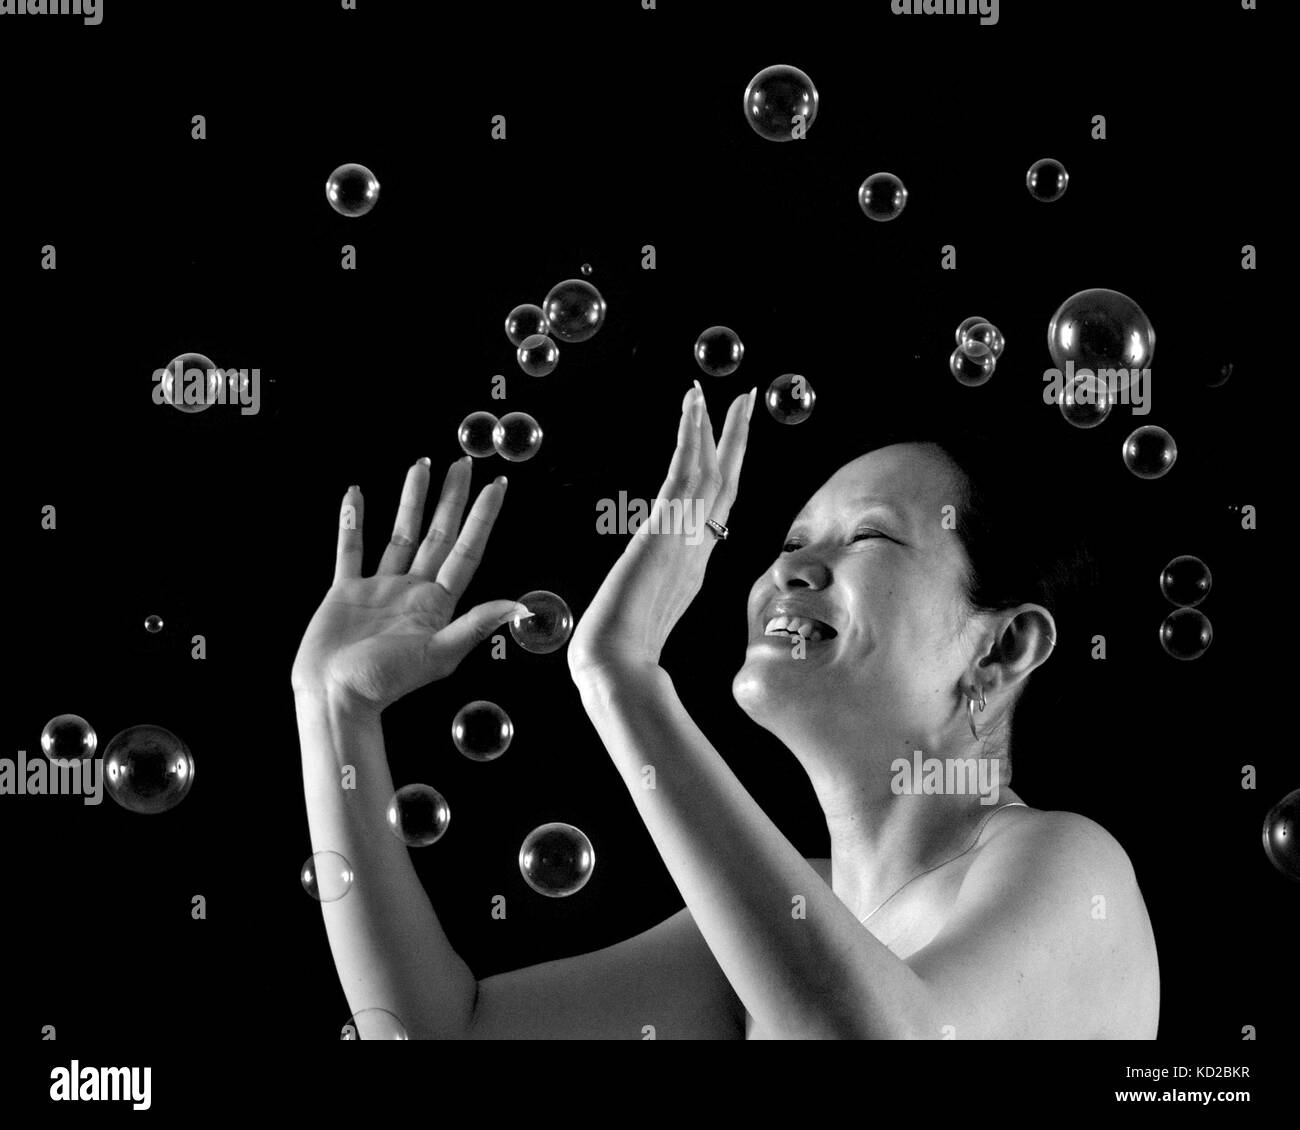 Chinese woman playing with blow bubbles - Stock Image